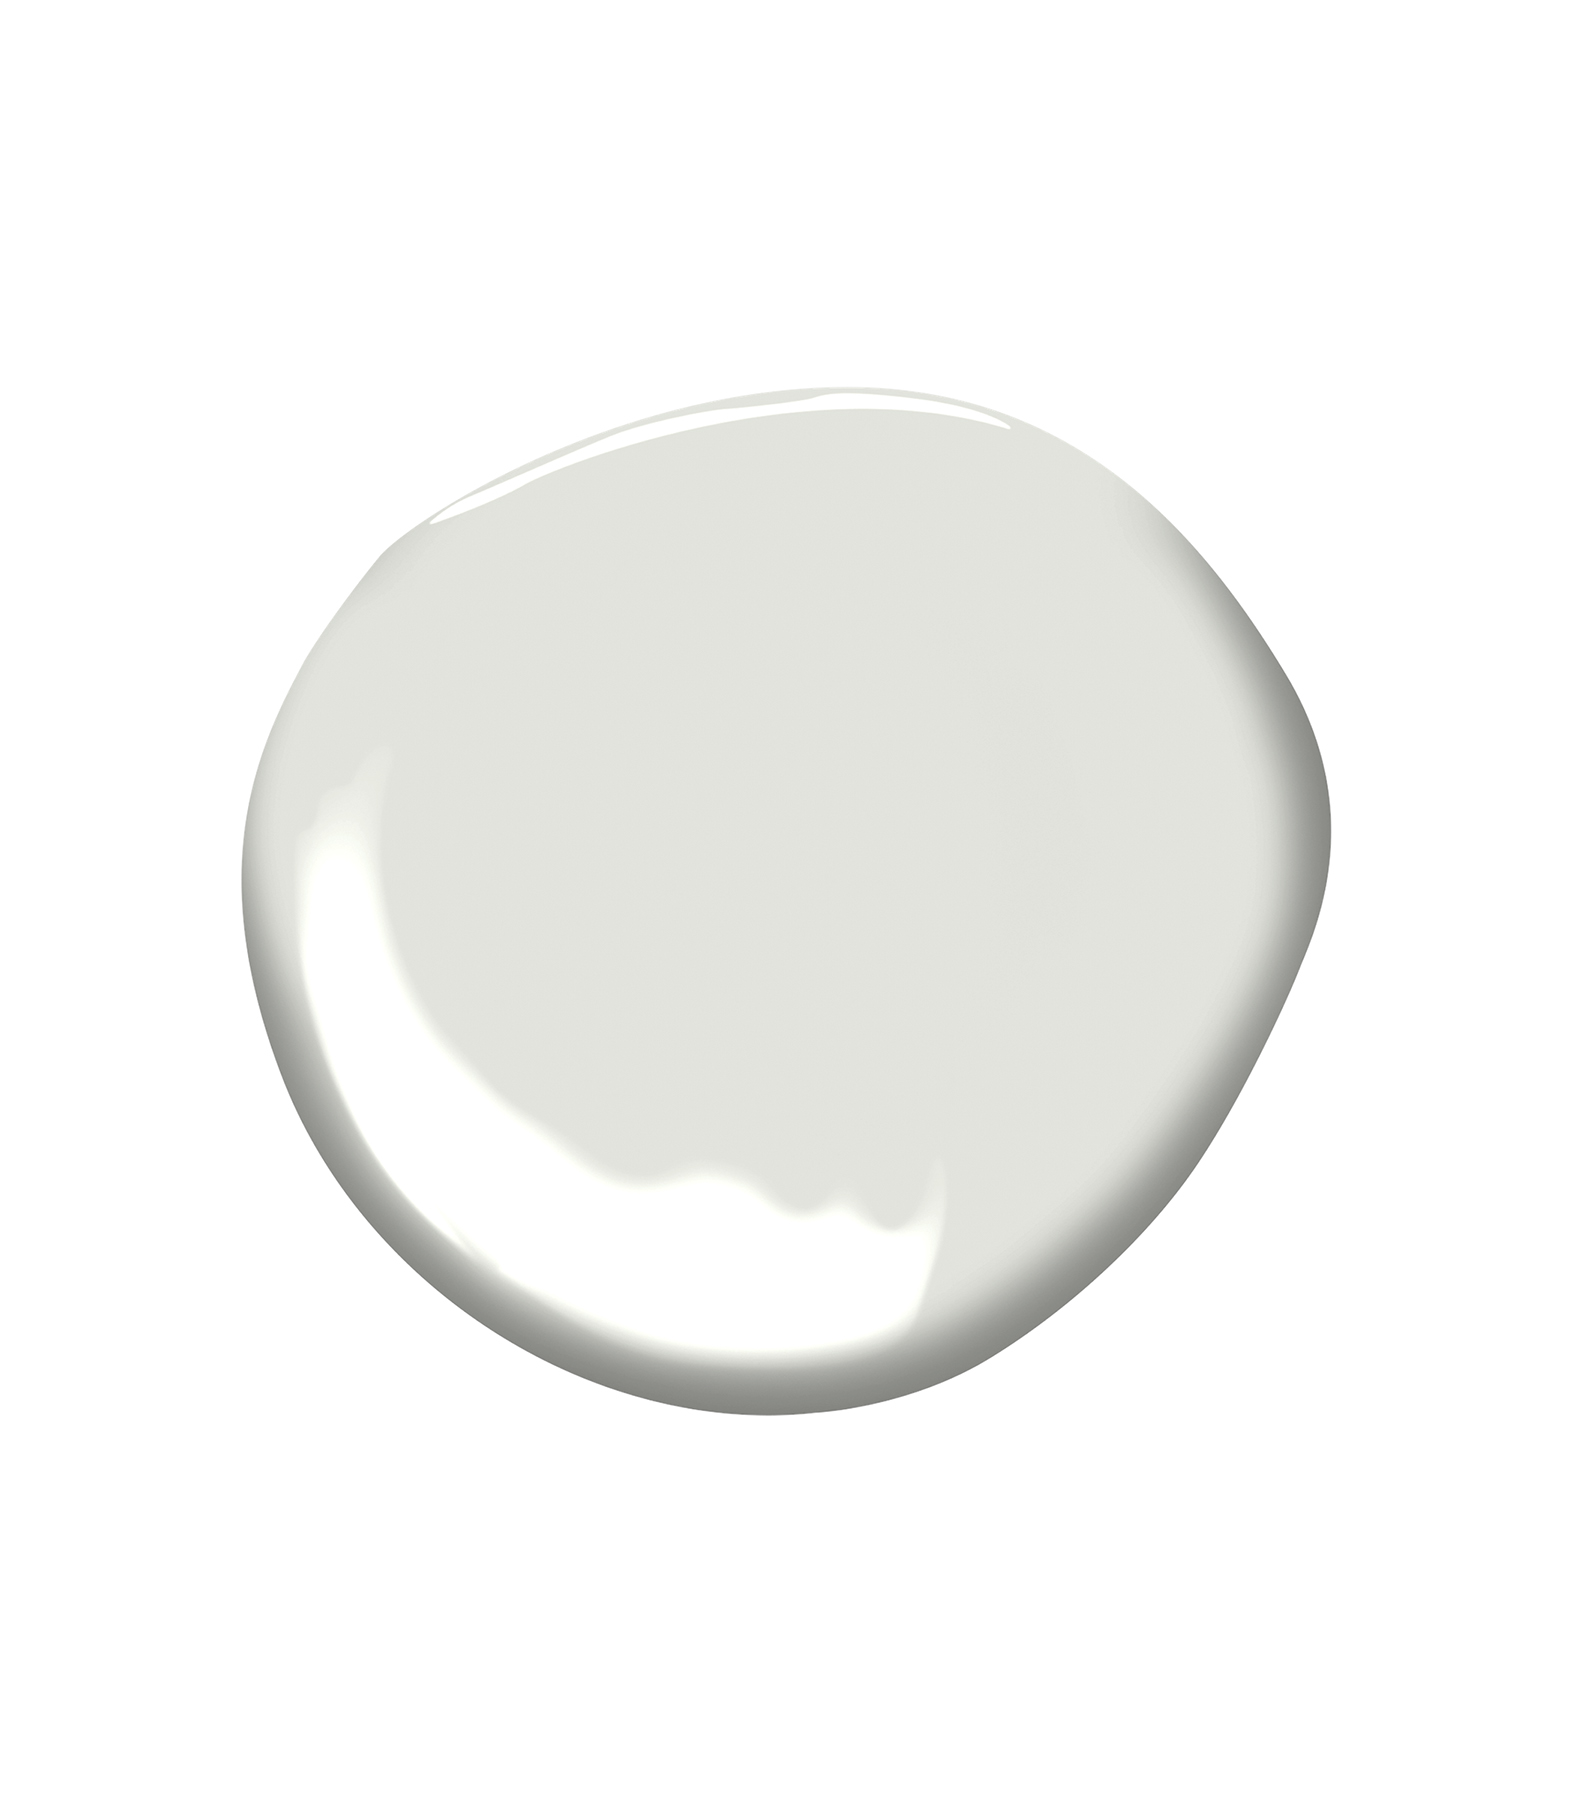 Paper White By Benjamin Moore